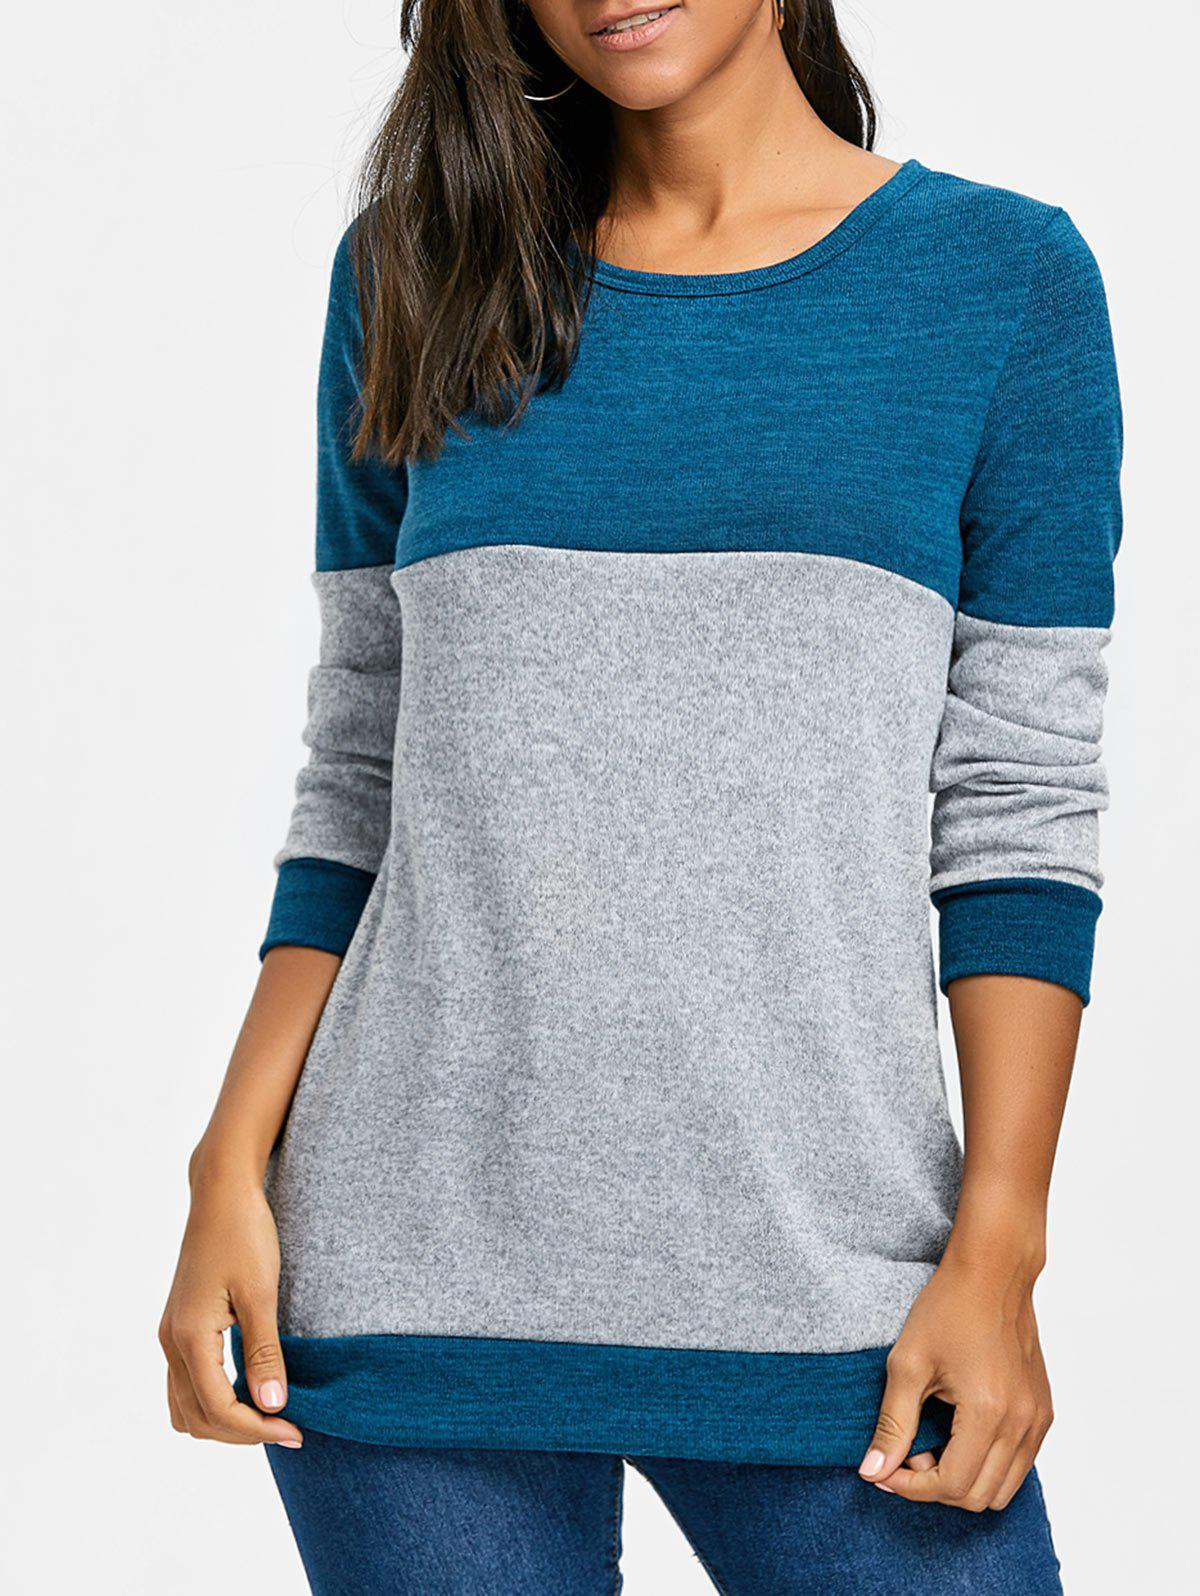 Contrast Color Long Sleeve Knit Top mesh contrast flounce sleeve top